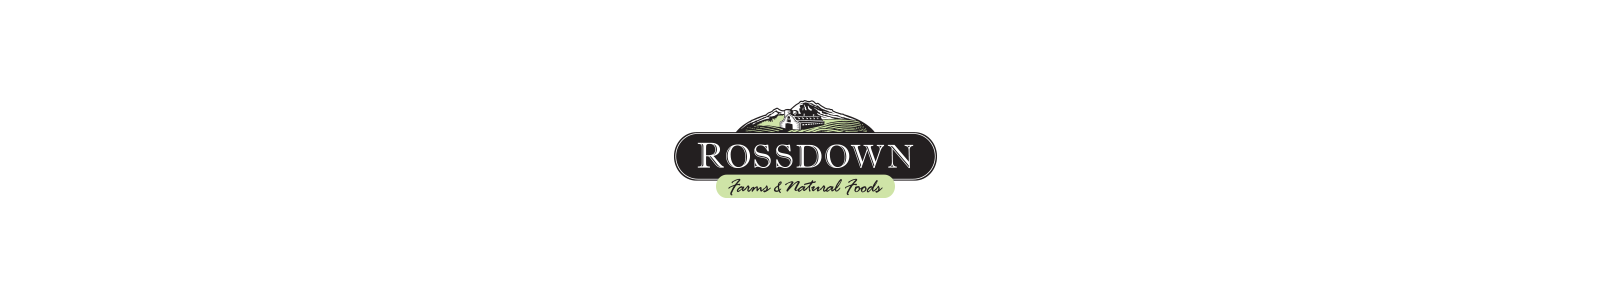 Rossdown Farms - Case Study